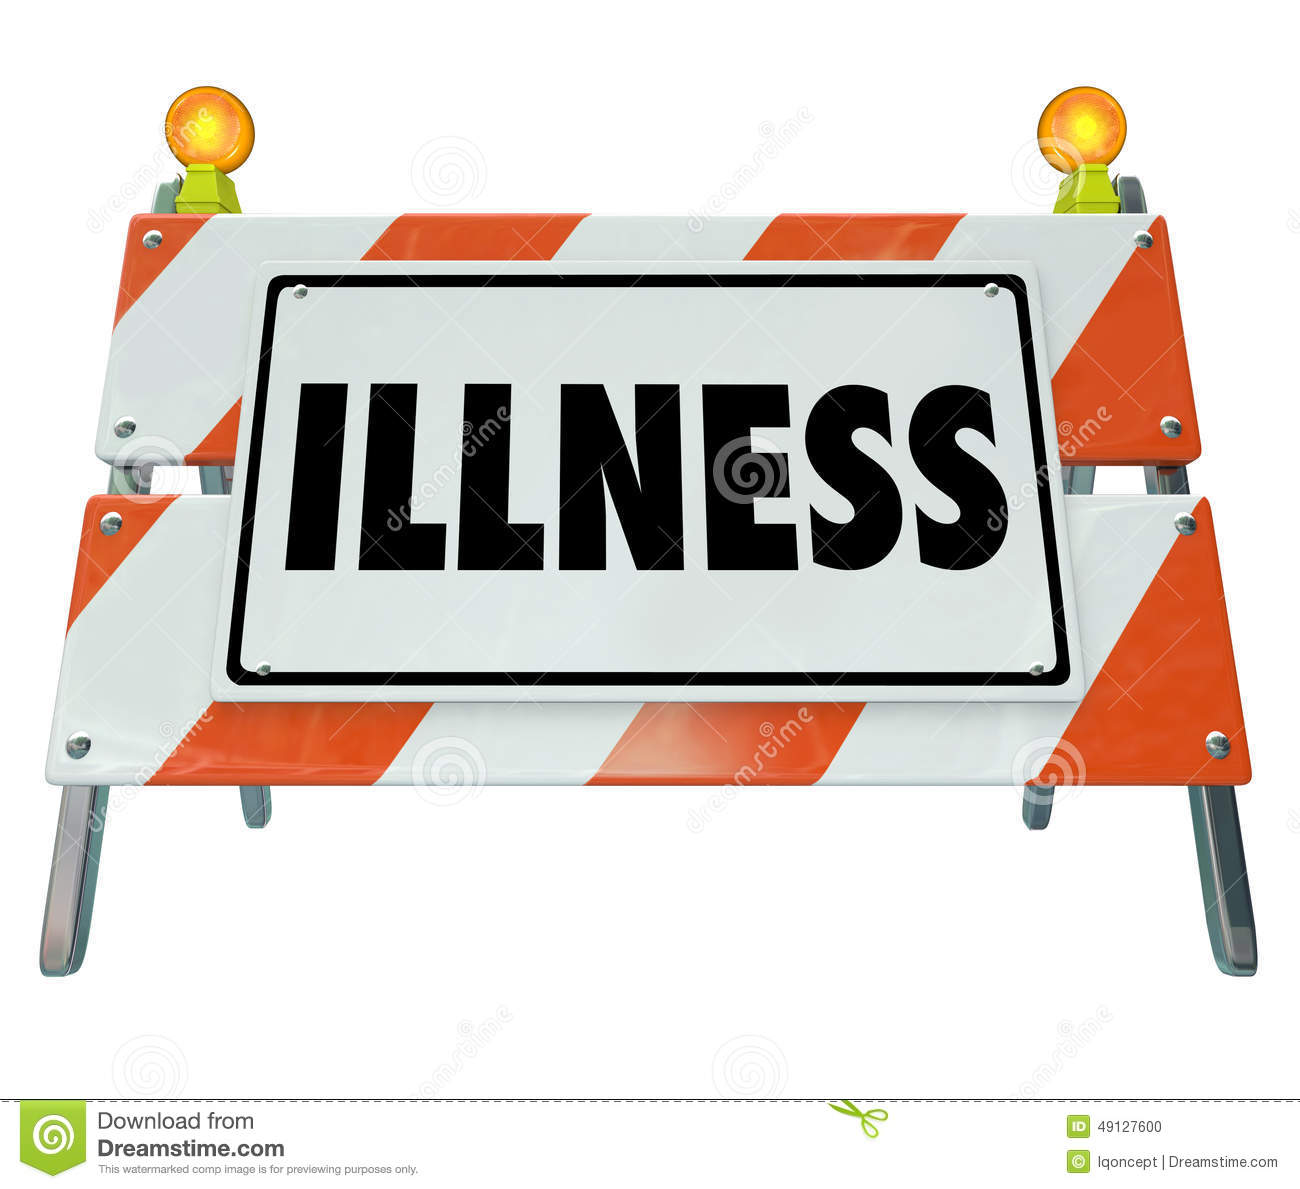 health illness Define illness illness synonyms, illness pronunciation, illness translation, english dictionary definition of illness n 1 a poor health resulting from disease of body or mind sickness b a disease 2 obsolete a the quality of being disagreeable or unpleasant.